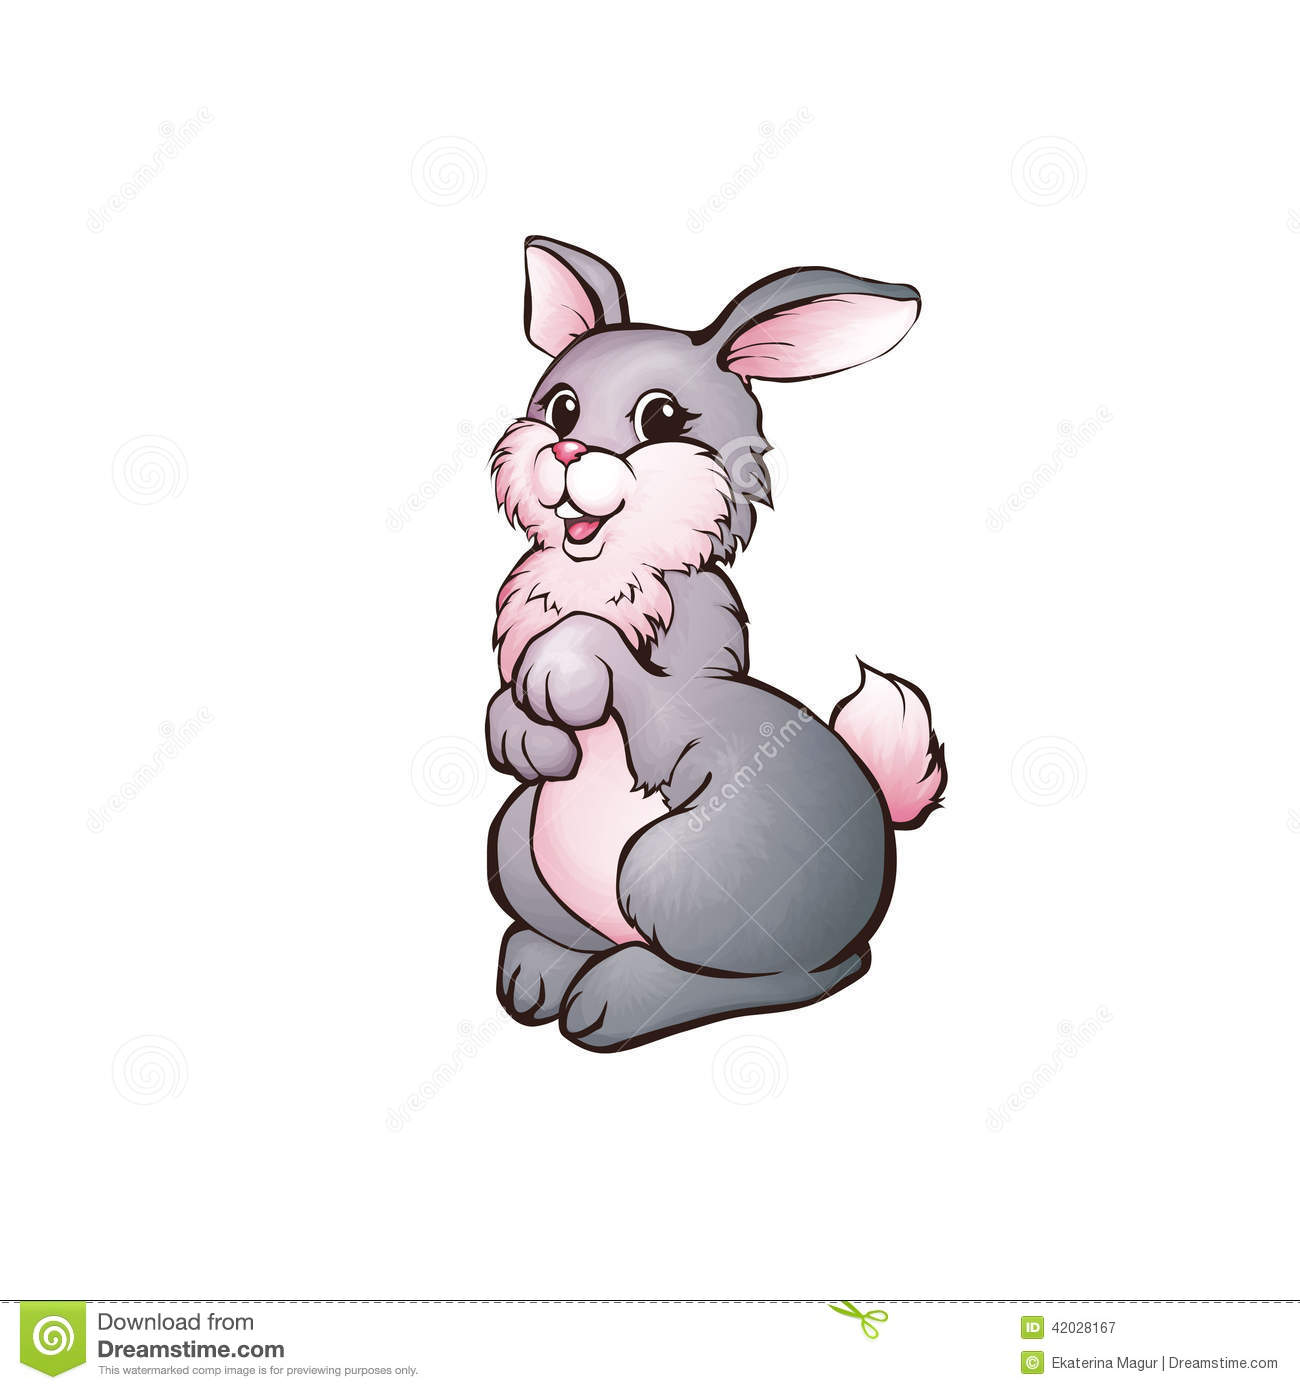 Vector Illustration Of Hare In Cartoon Style On Transparent Background